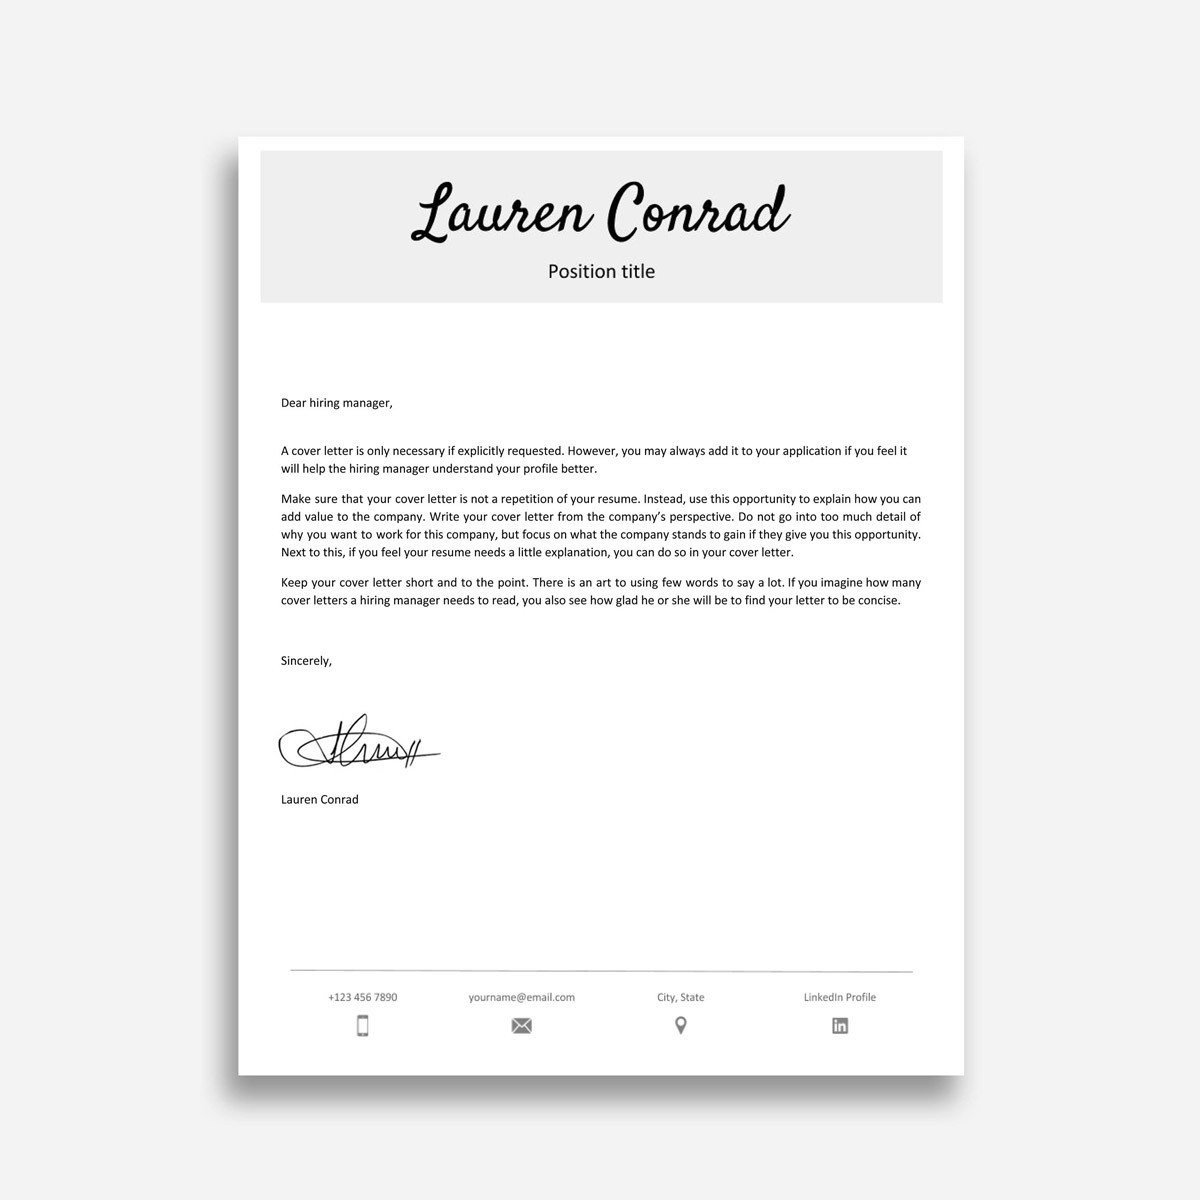 Google Cover Letter Template Google Docs Cover Letter Templates 9 Examples to Download now